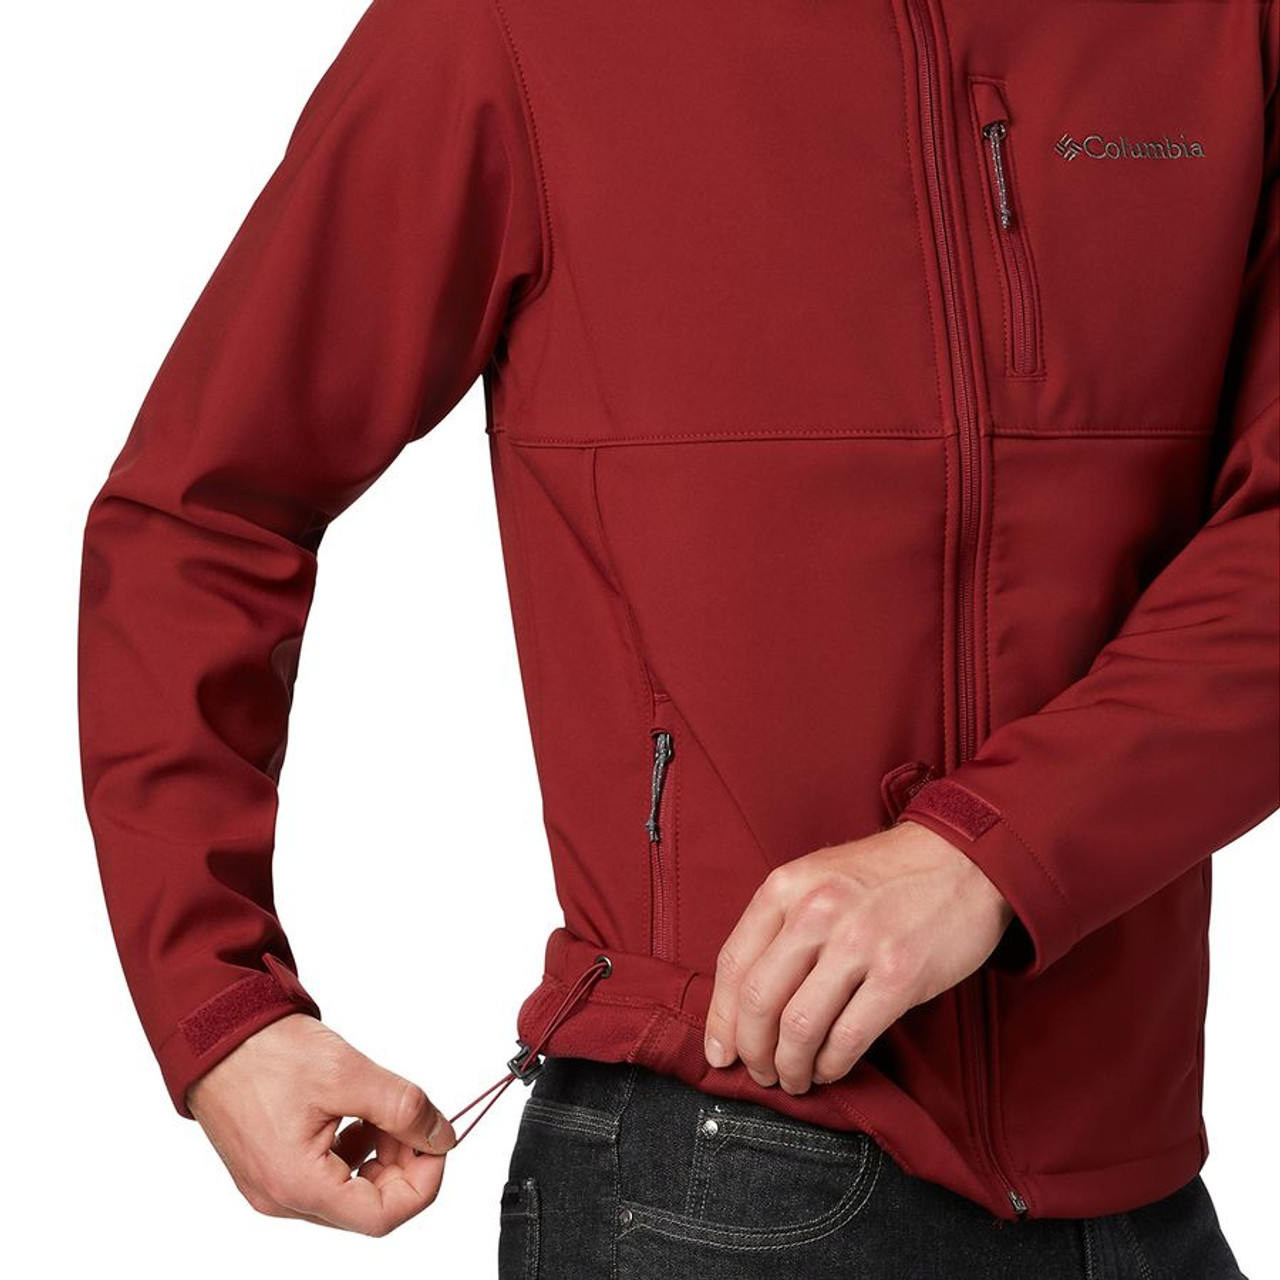 Columbia M Ascender Softshell Jacket